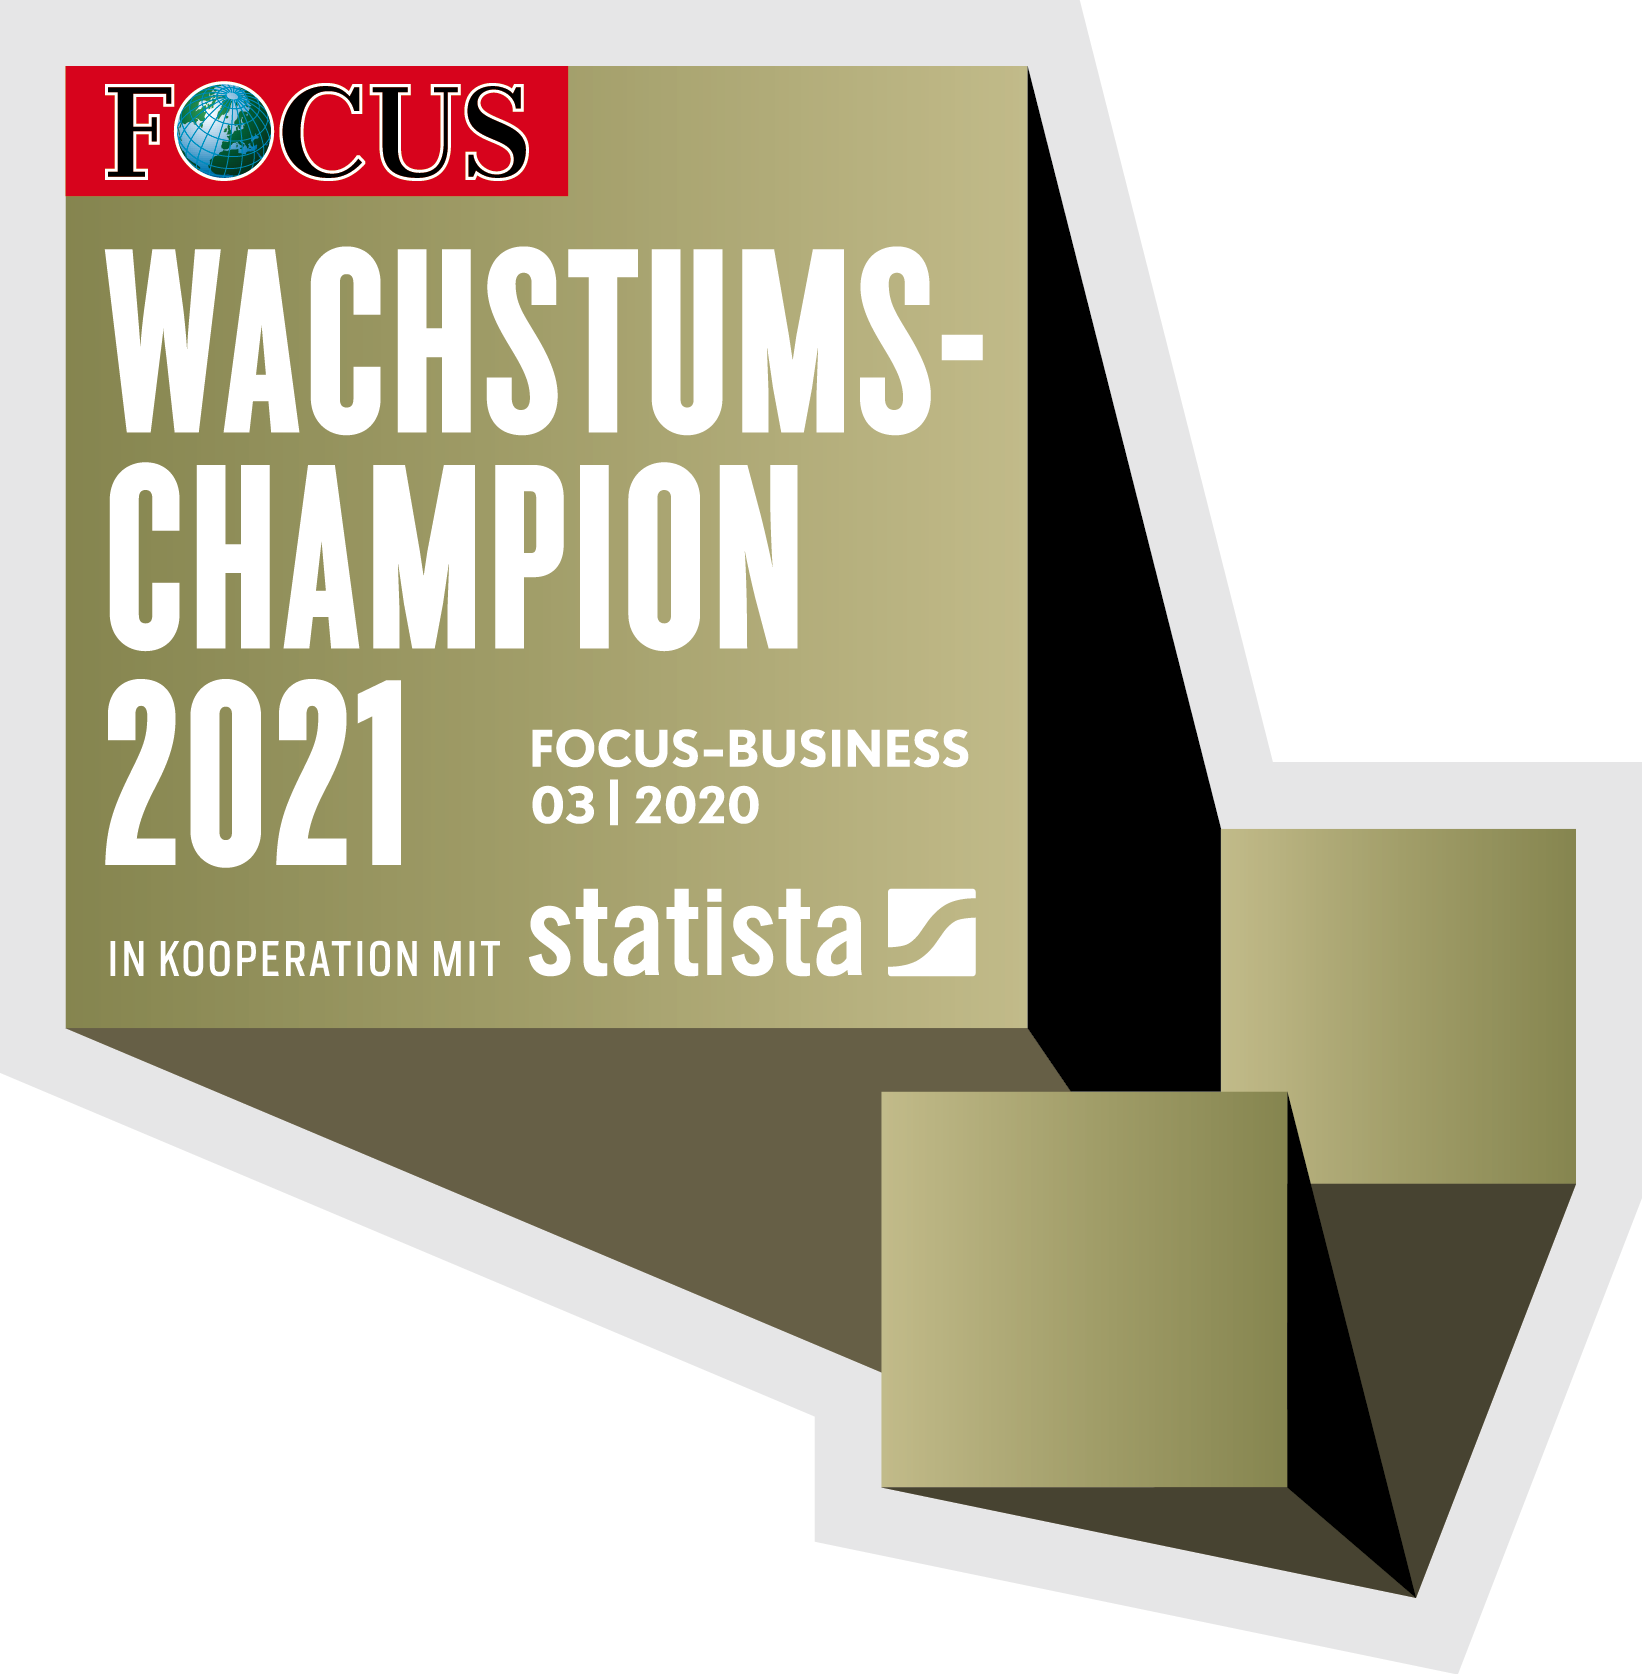 Focus Business Wachstums-Champion 2021